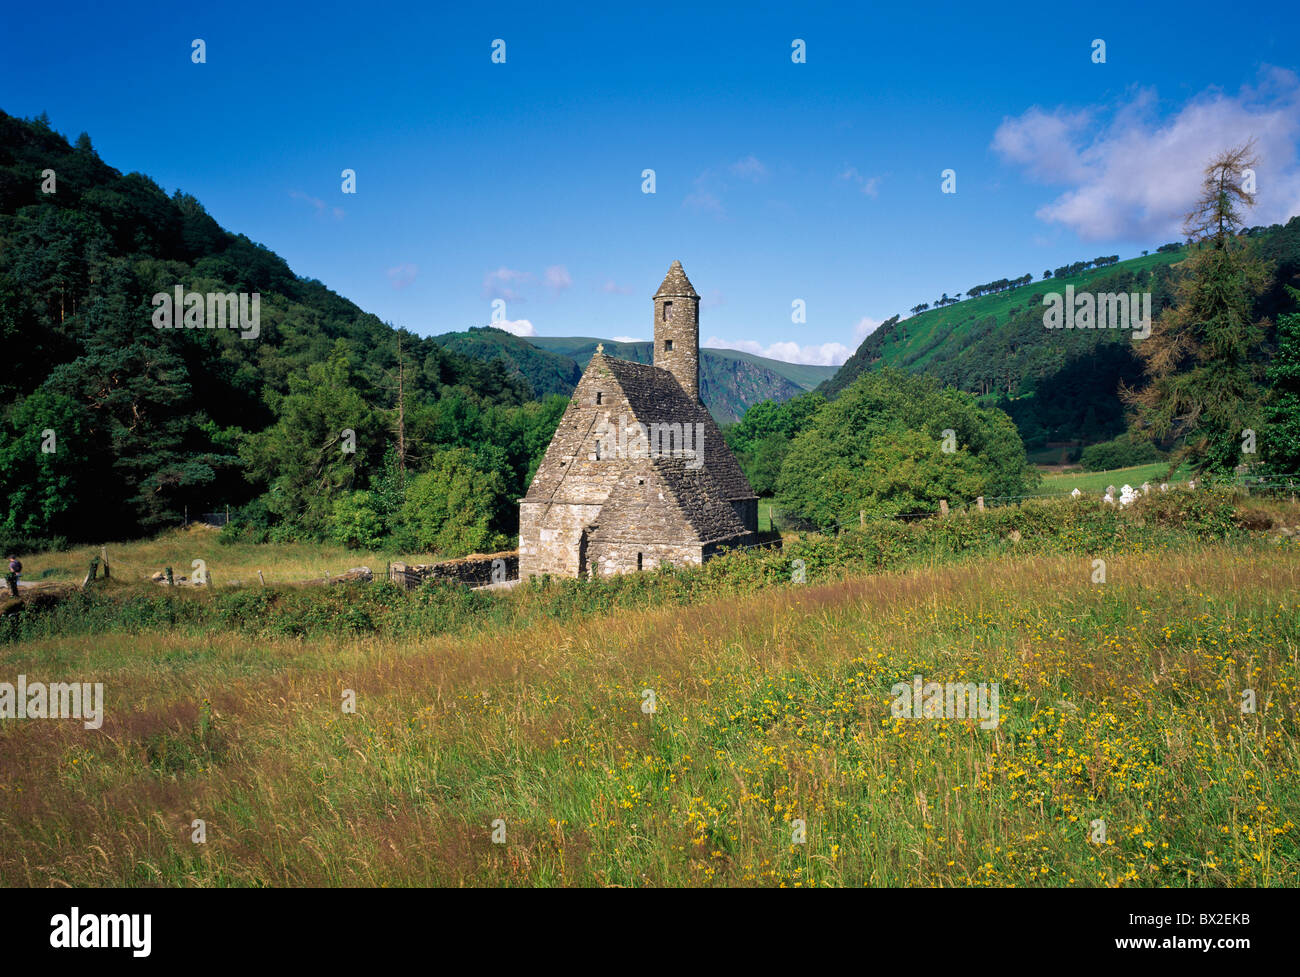 St. Kevins Küche, Glendalough, County Wicklow, Irland Stockfoto ...